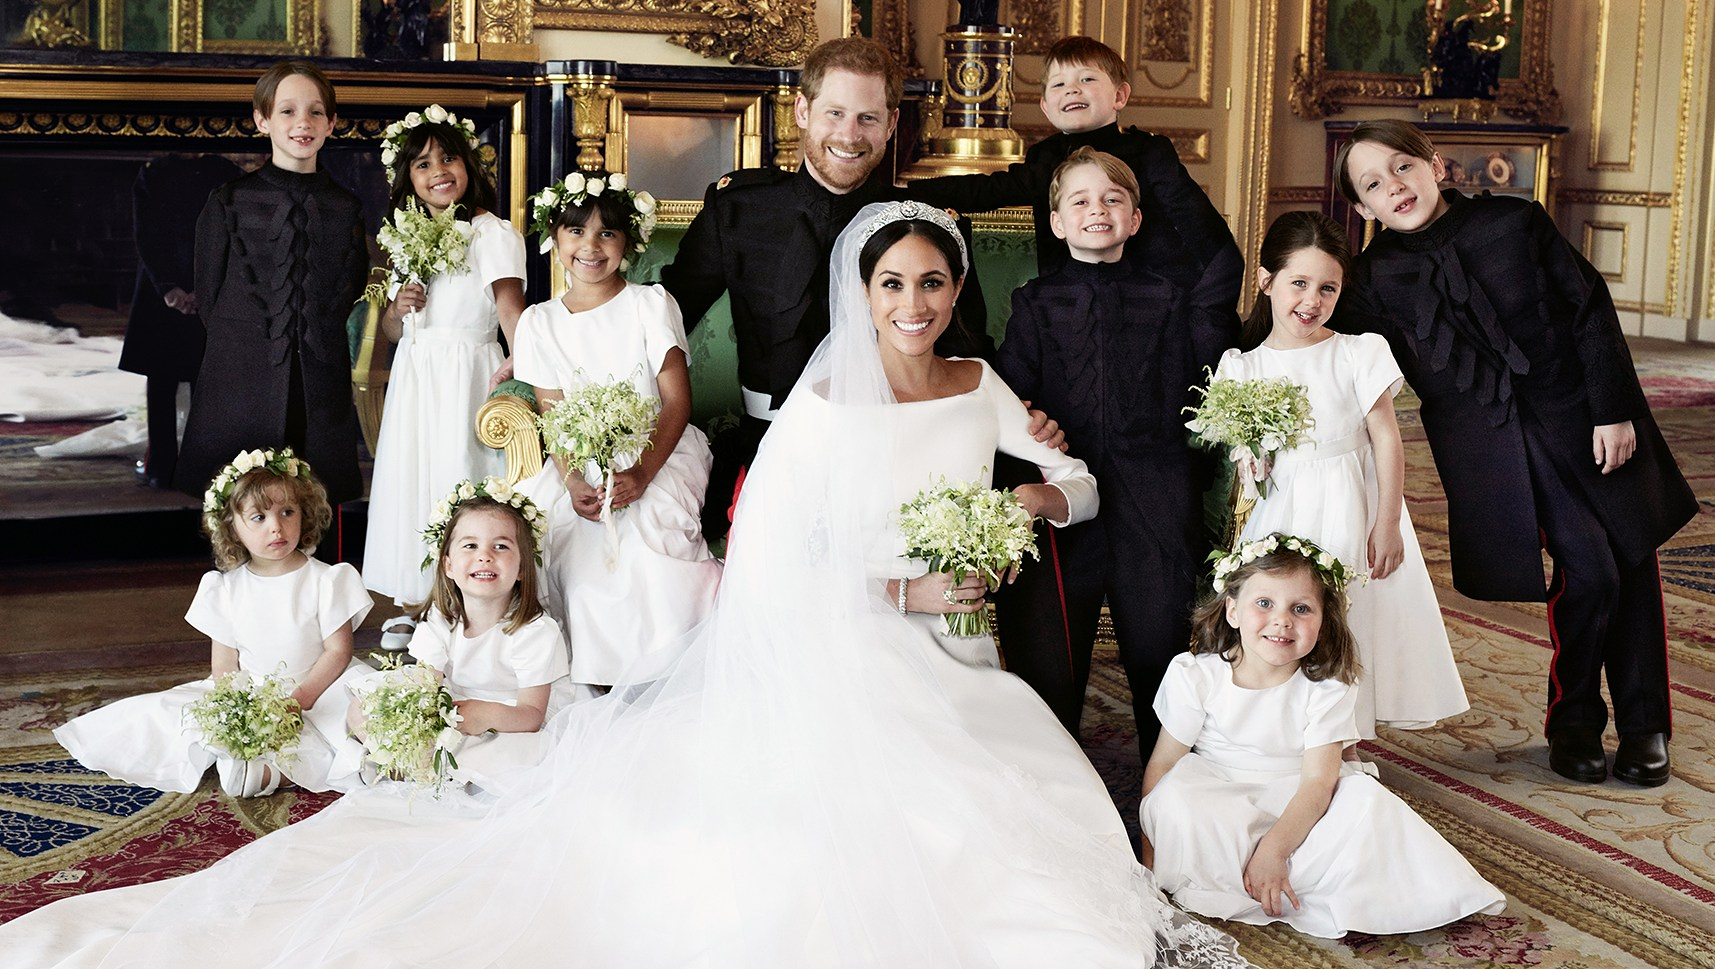 Prince Harry Meghan Markle Official Wedding Photo Emerald Couch